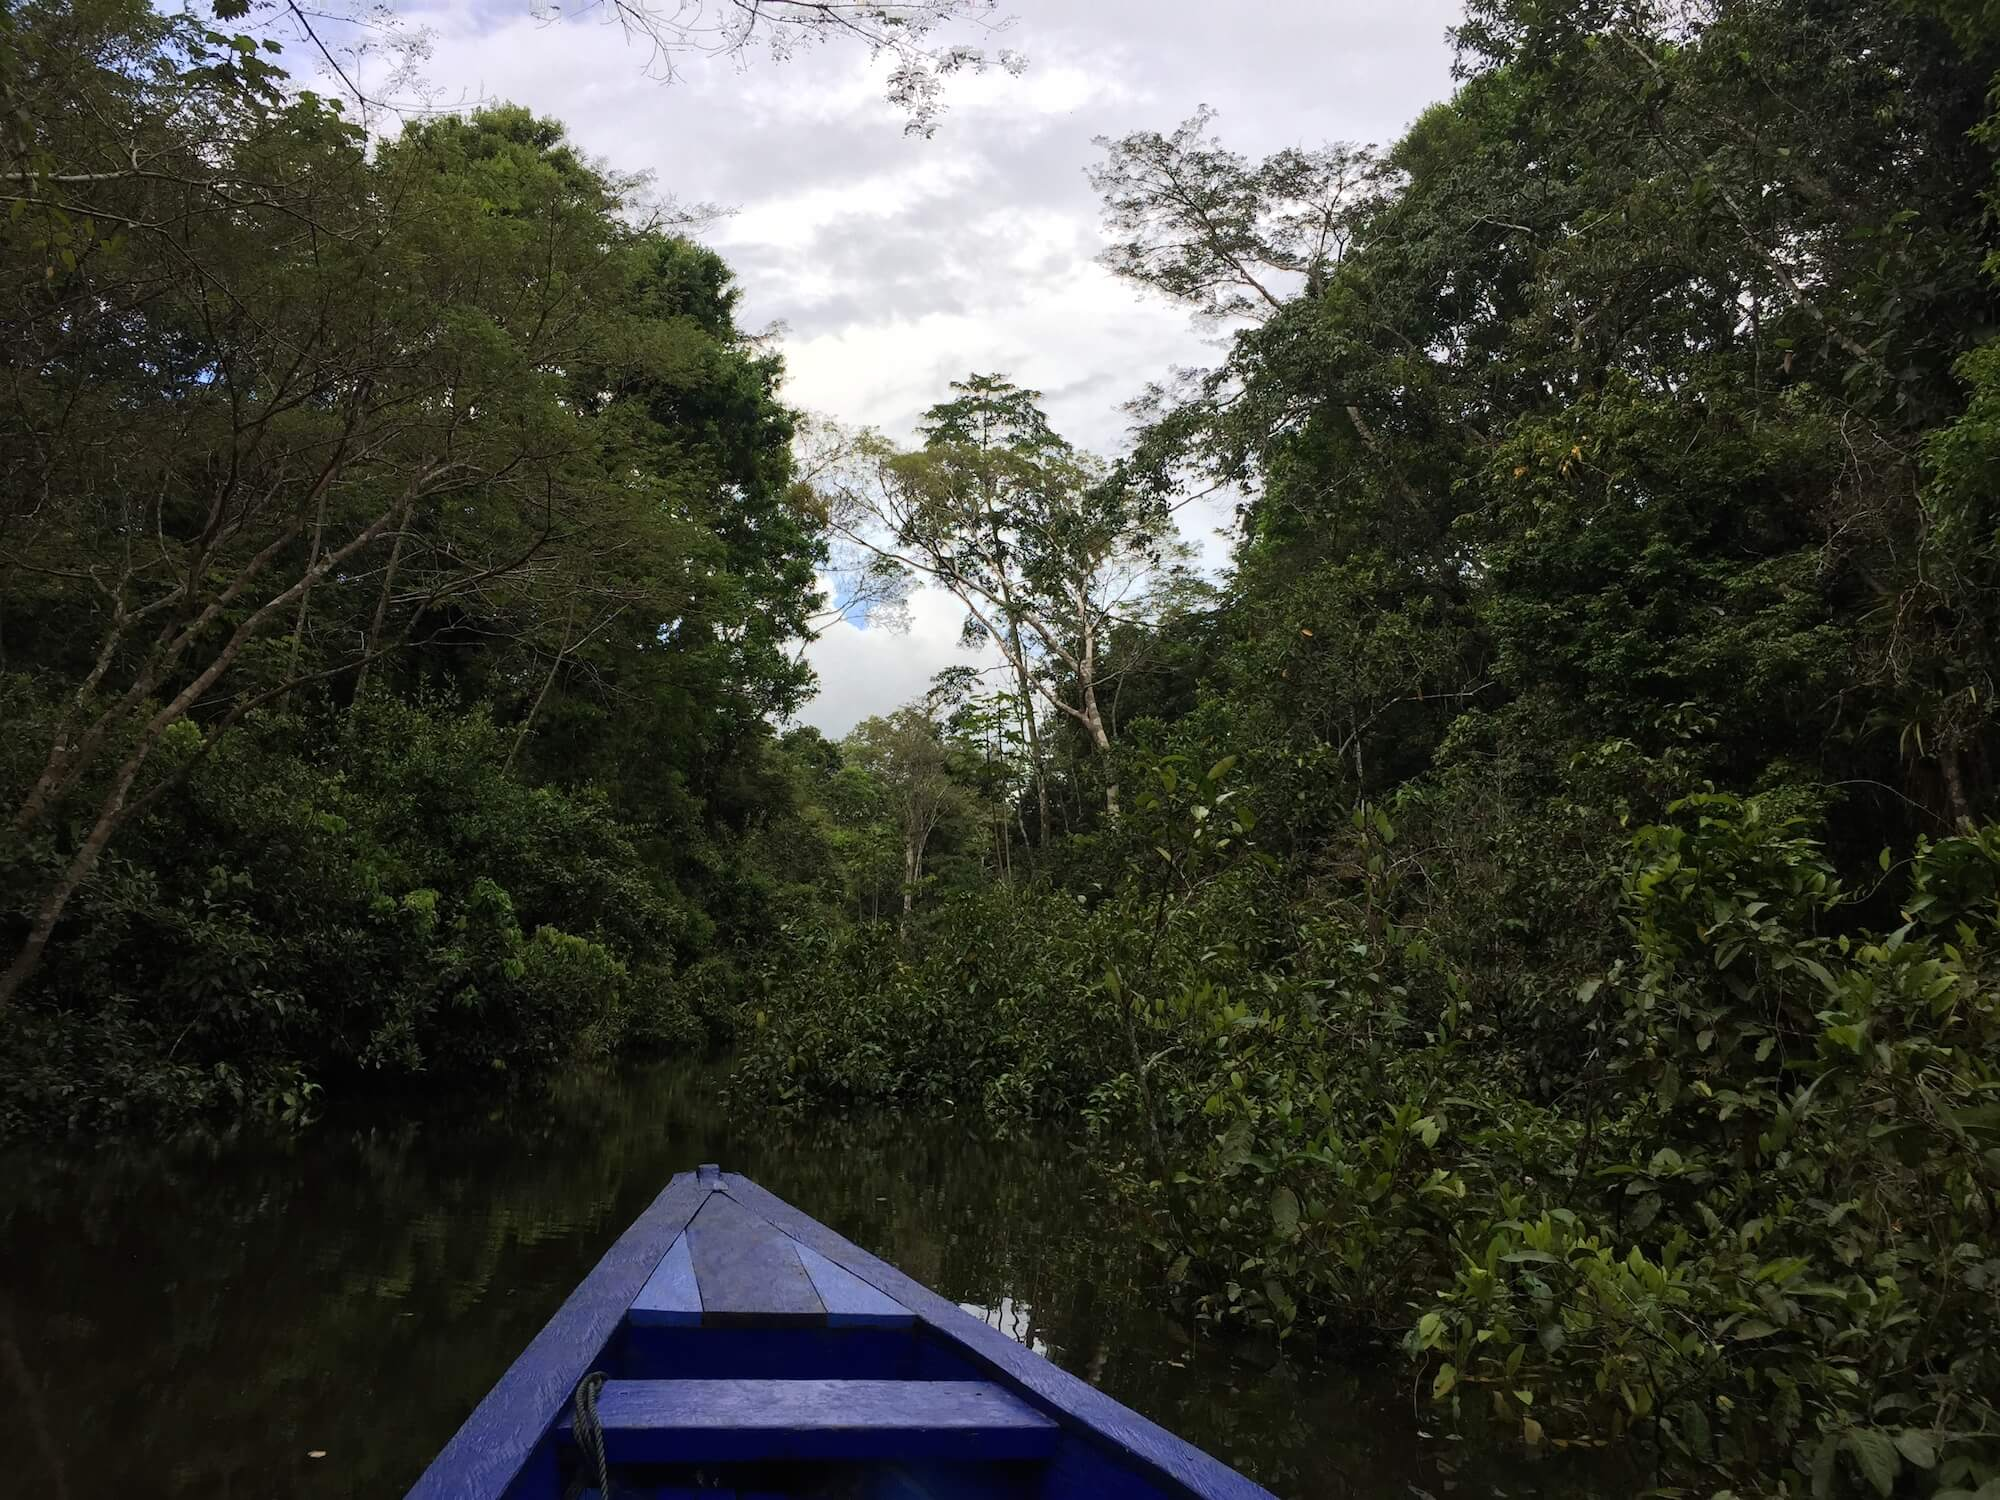 Exploring the Amazon jungle for medicinal plants and healthy superfood